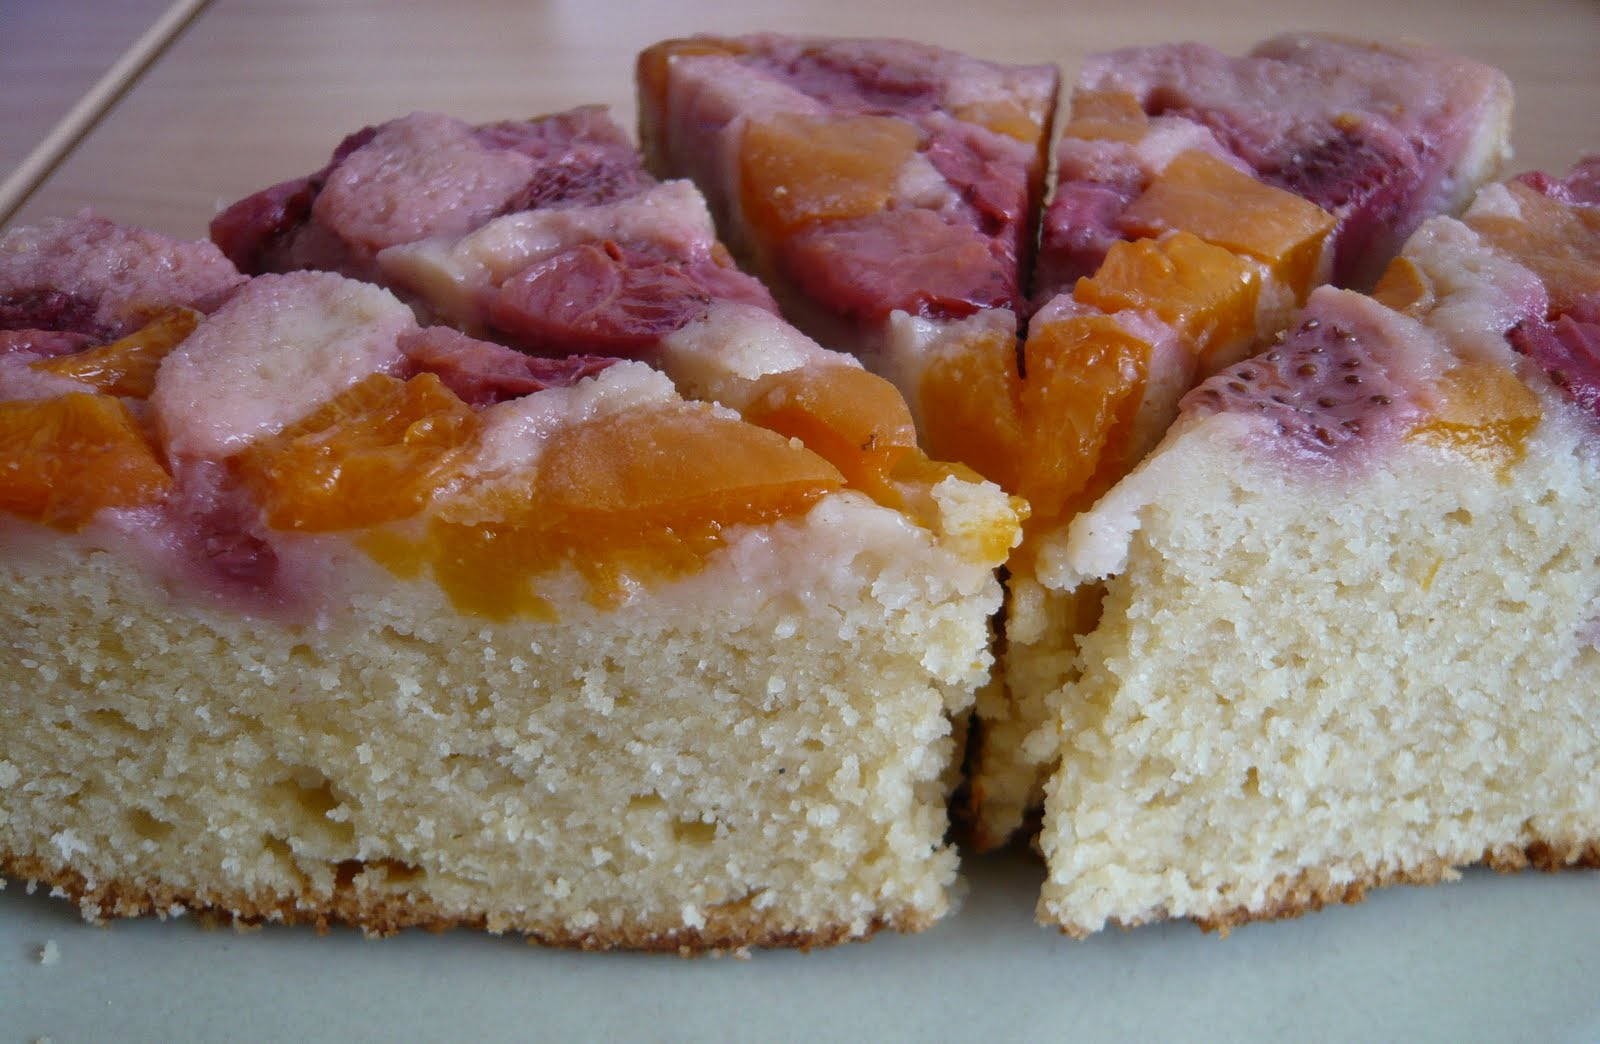 Cake With Fruit Yogurt : Cake, Crumbs and Cooking: Stone fruit yogurt cake revisited